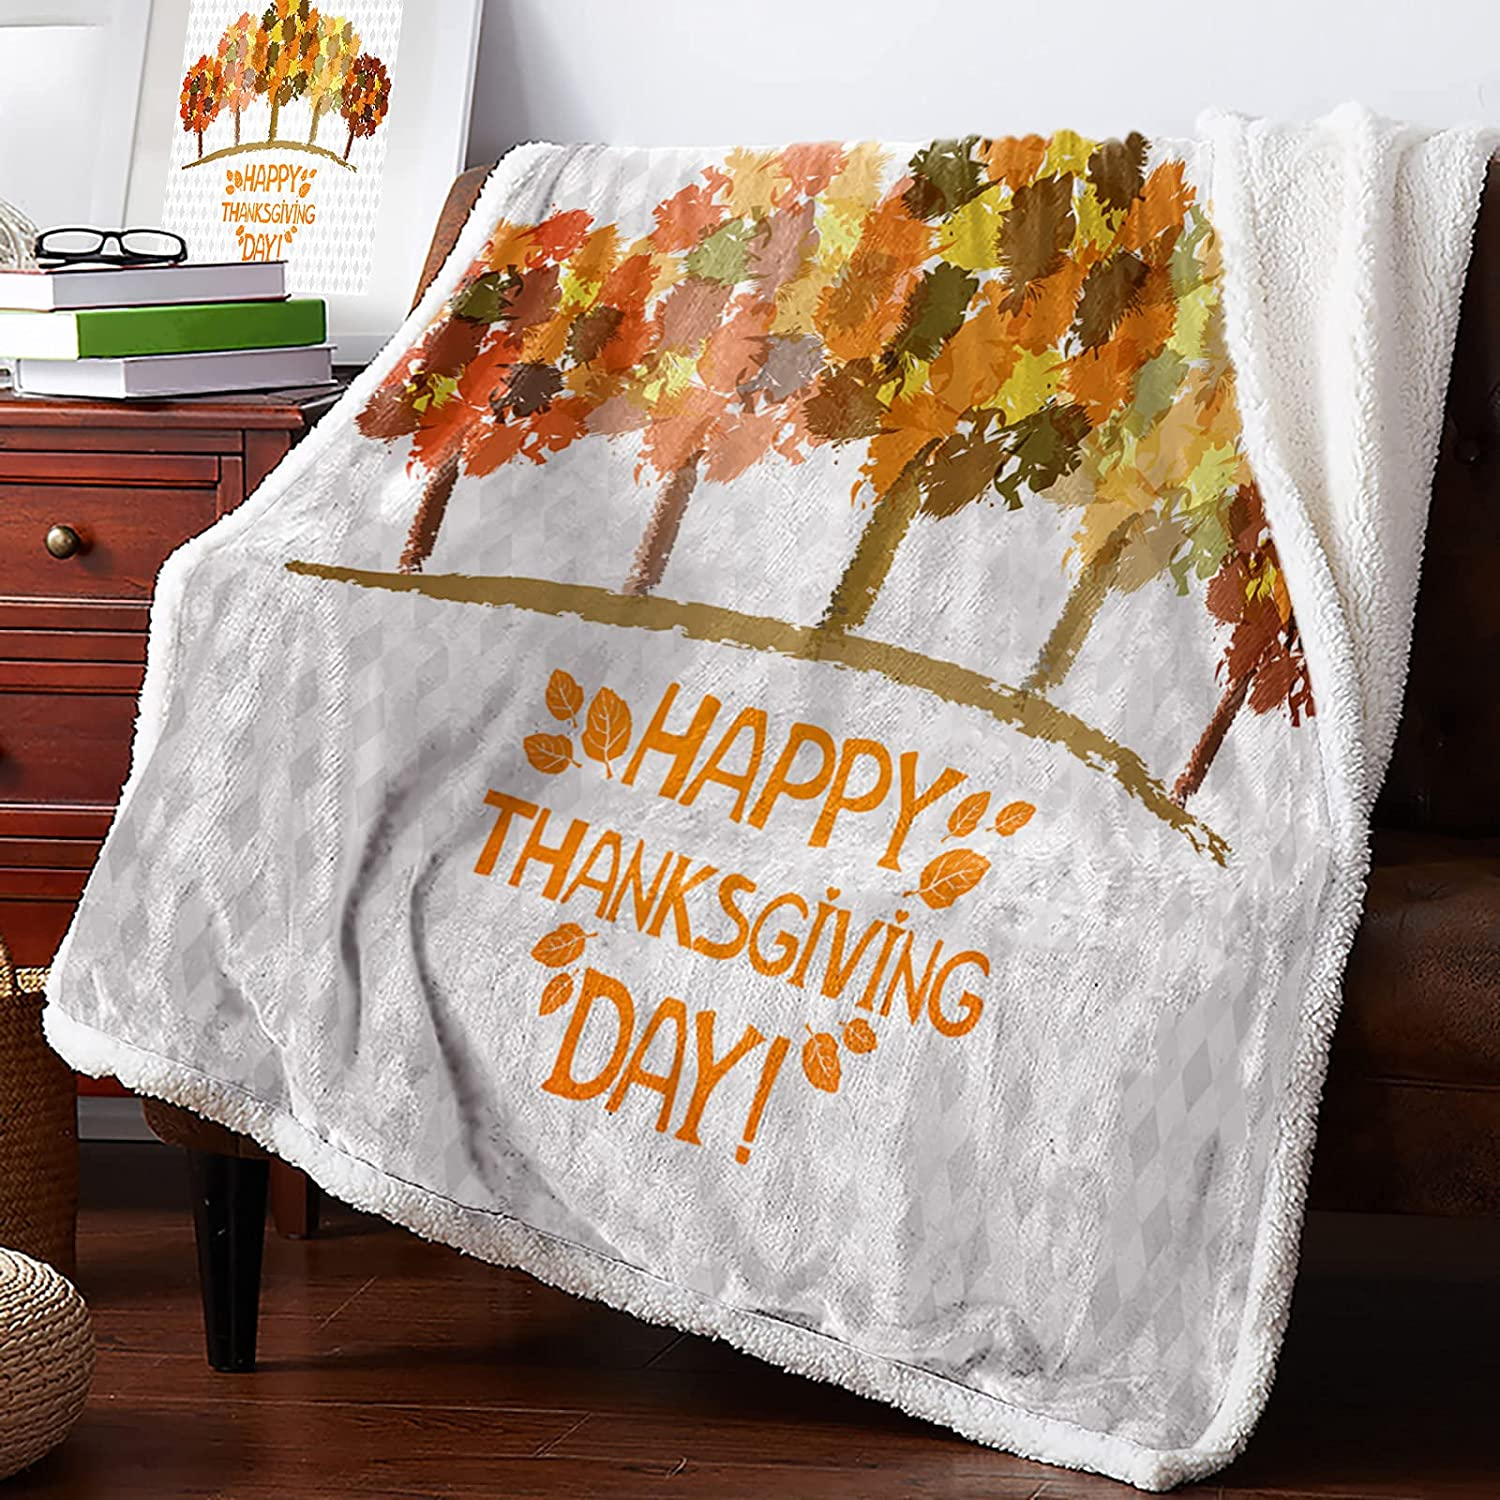 MuswannaA Sherpa Max 75% OFF Fleece 2021 autumn and winter new Throw Blanket Happy Thanksgiving Sup Day